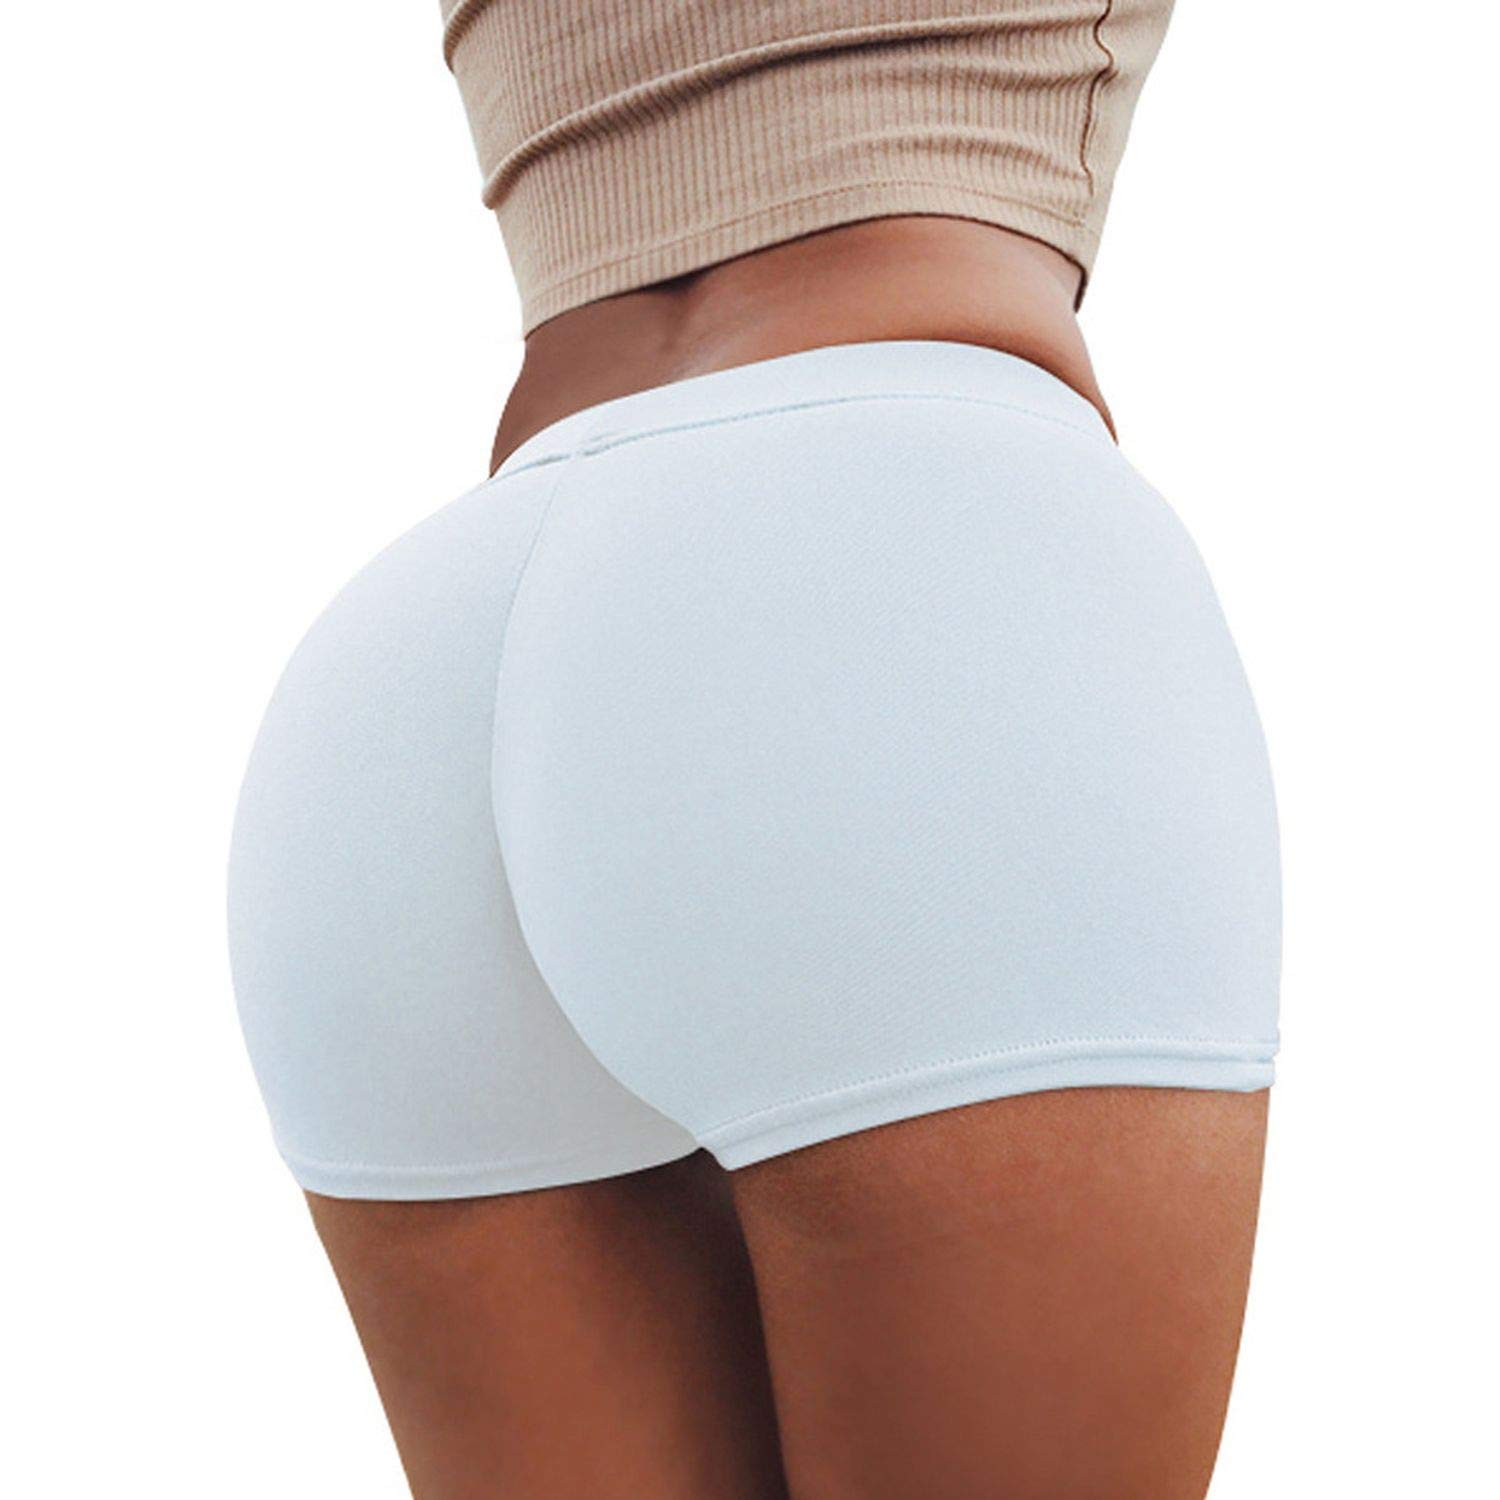 Amazon.com: Our ideas-yoga-leggings Short Sexy Elastic ...